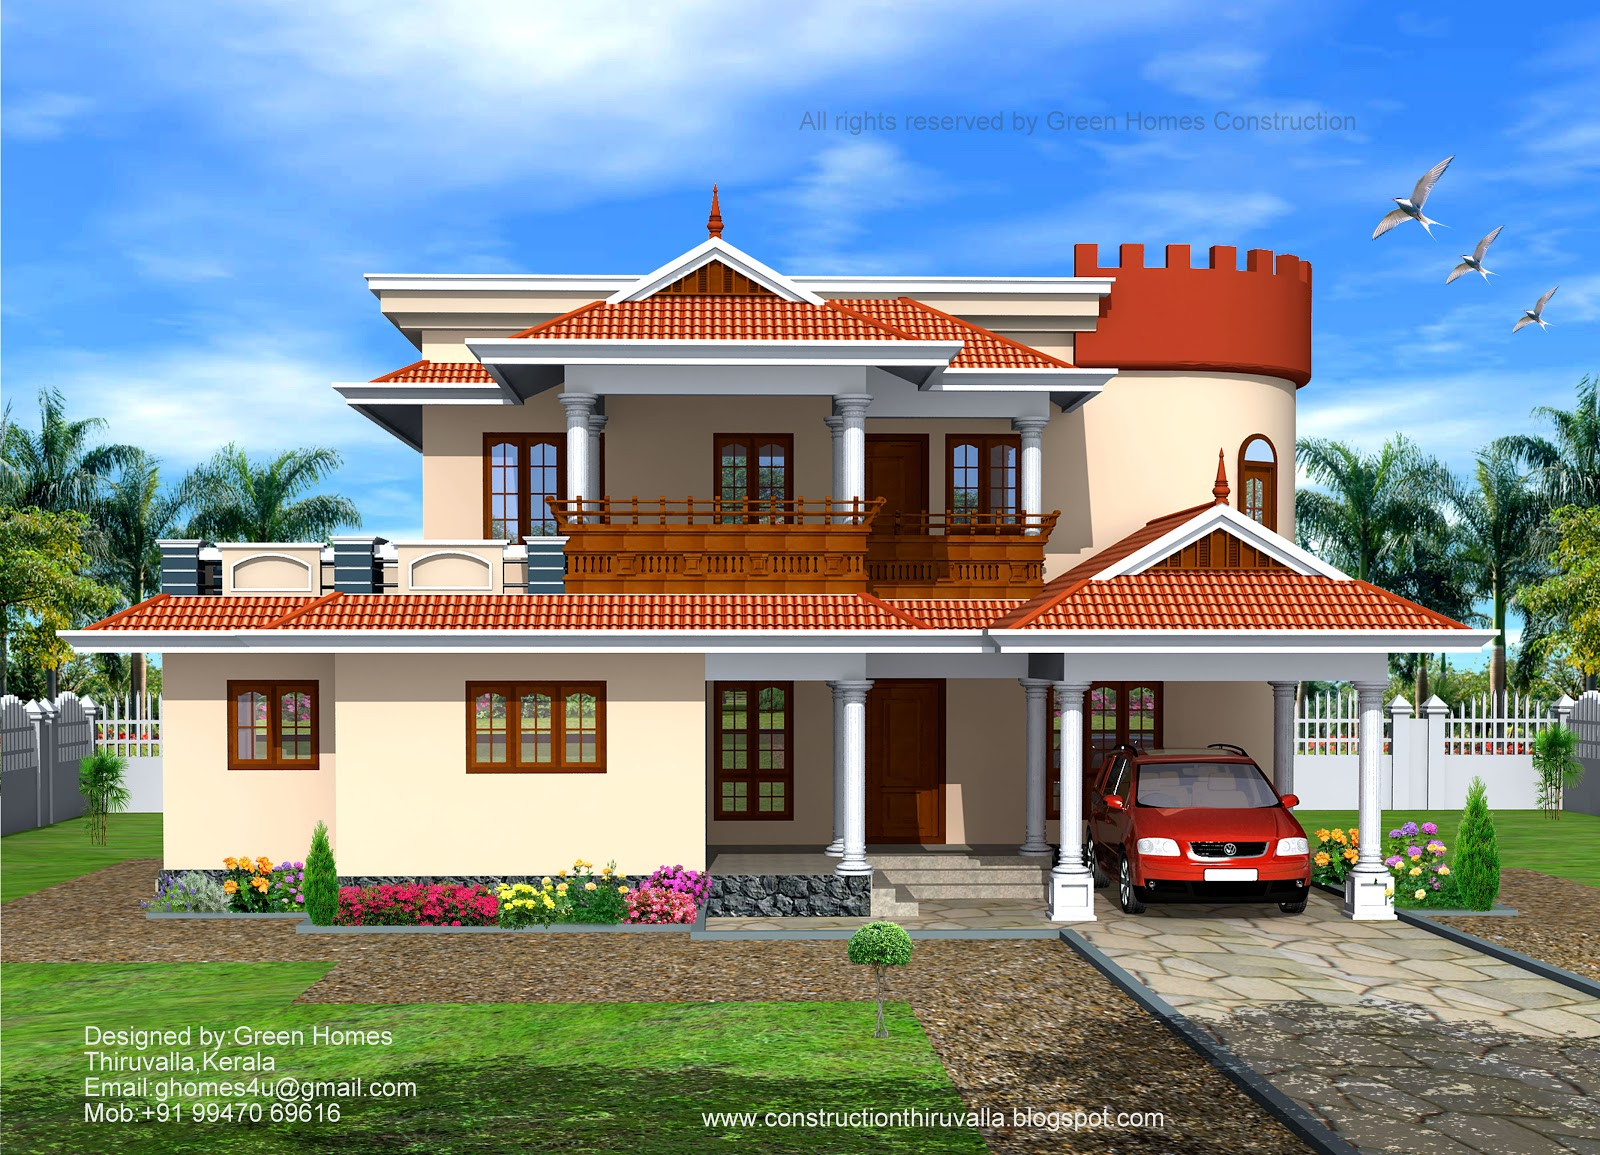 Green homes october 2012 for House front model design